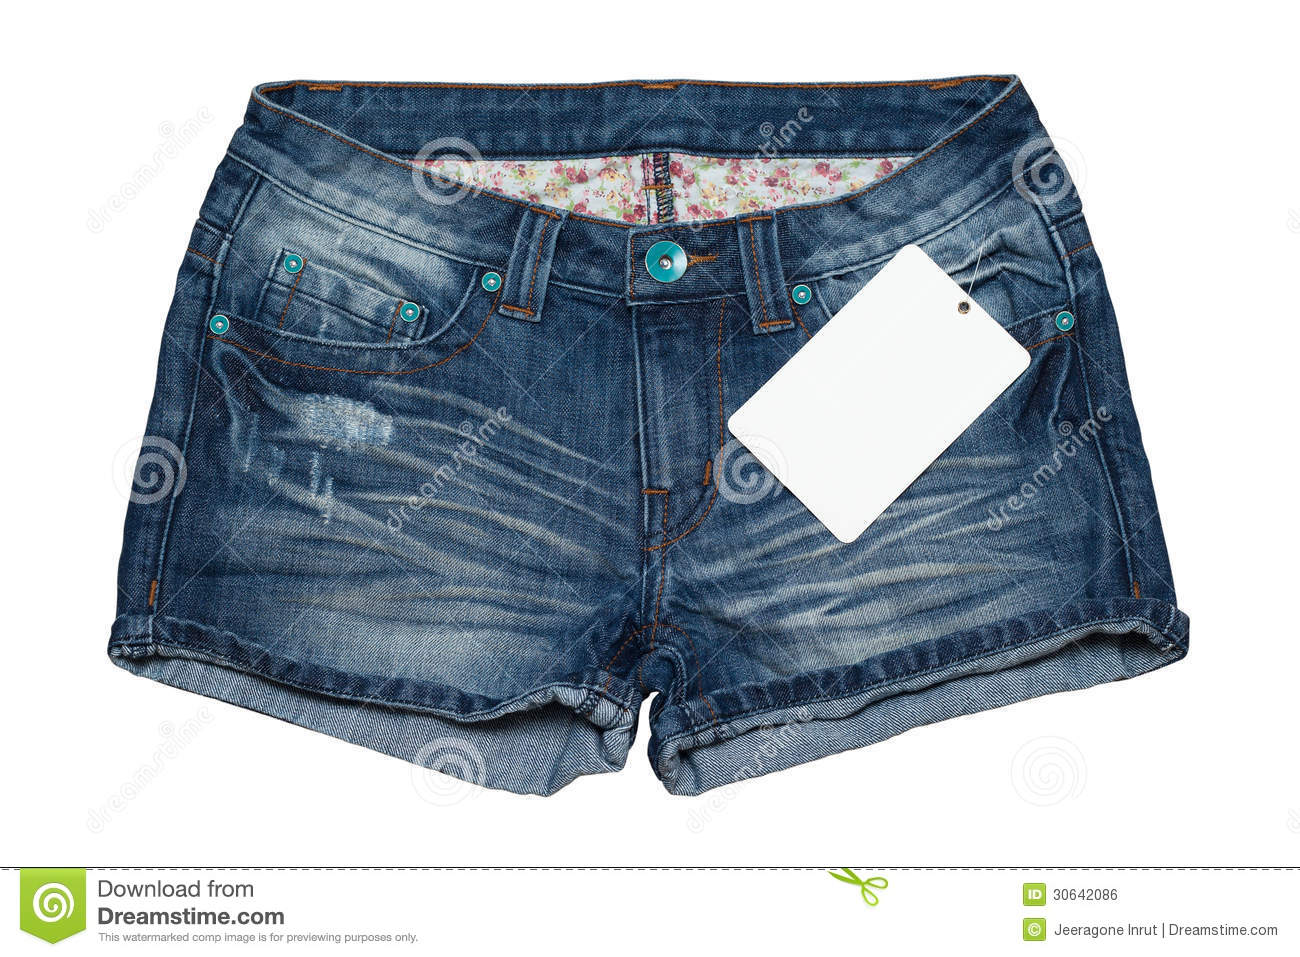 339331b0c7e1c Jean Short Pants With Price Tag Royalty Free Stock Image - Image .